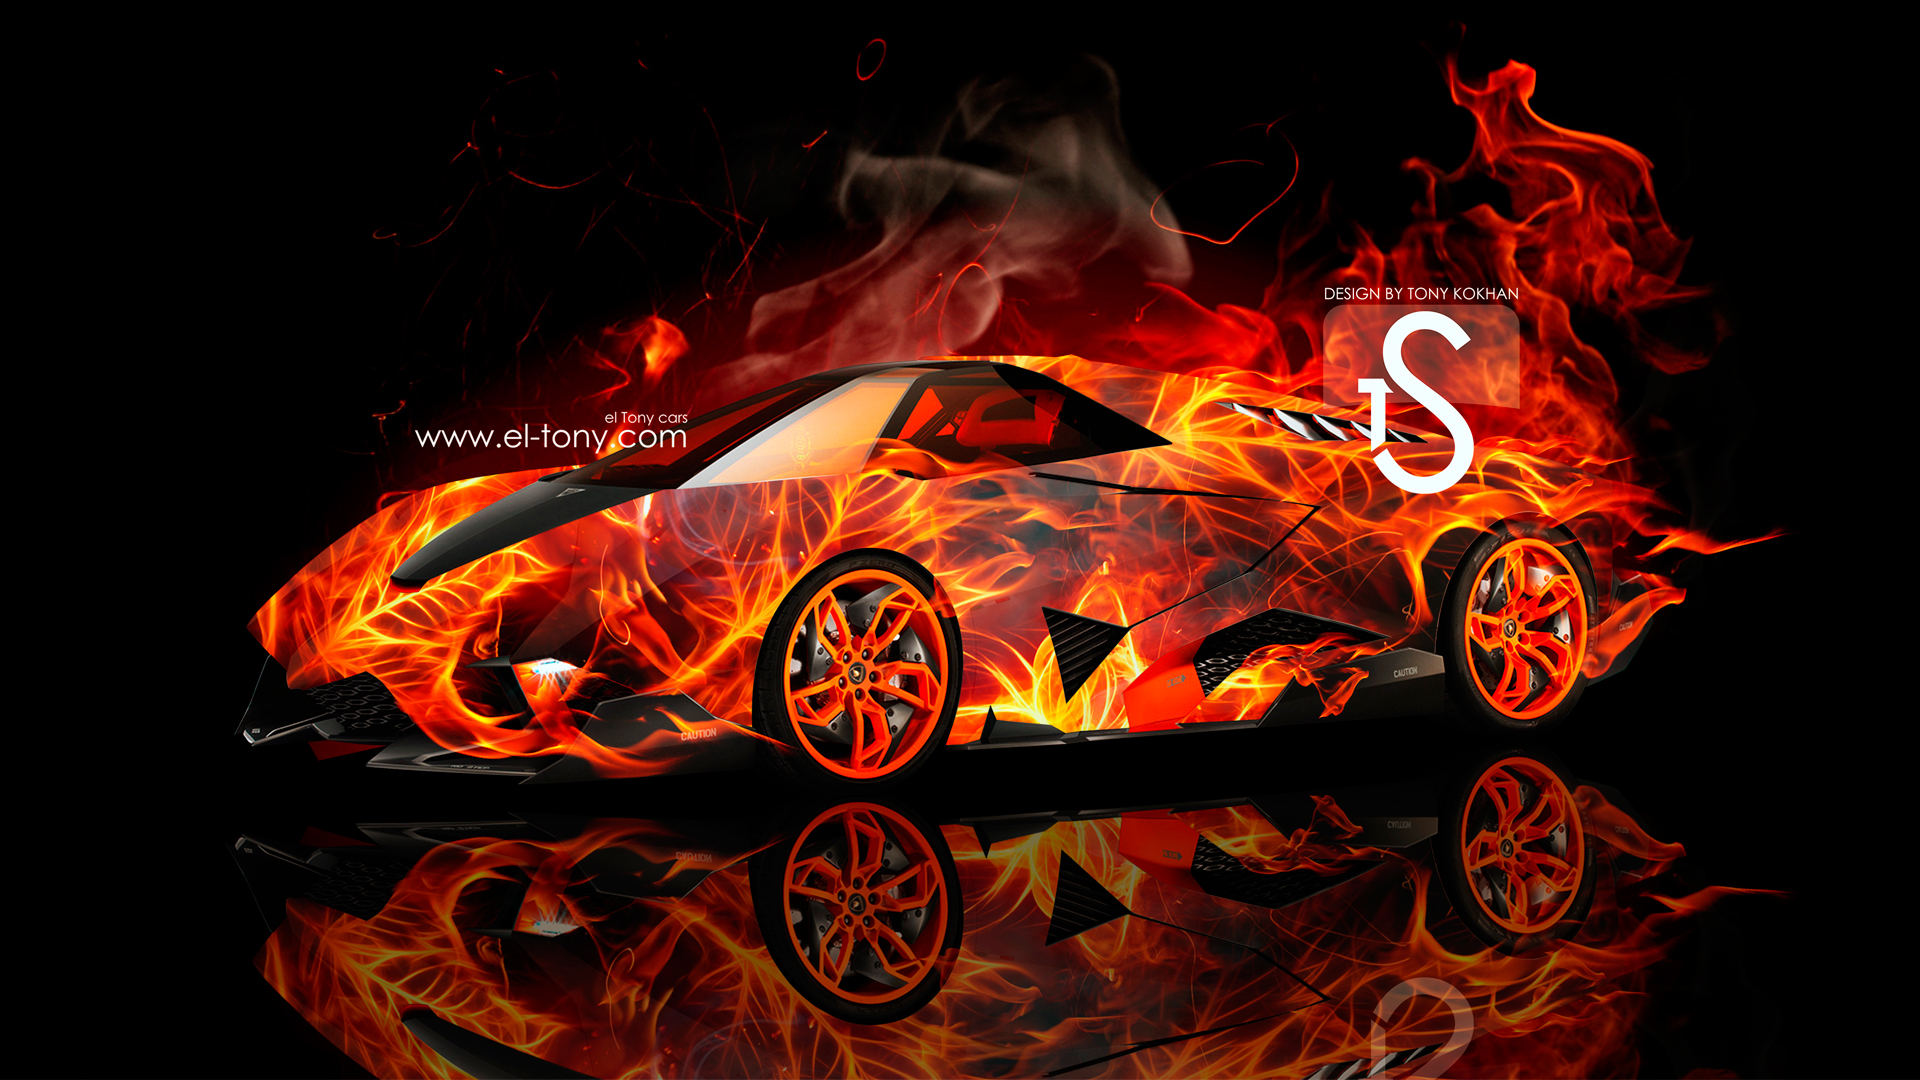 Lamborghini Egoista Fire Car 2013 HD Wallpaper 1920x1080 [wwwel tony 1920x1080